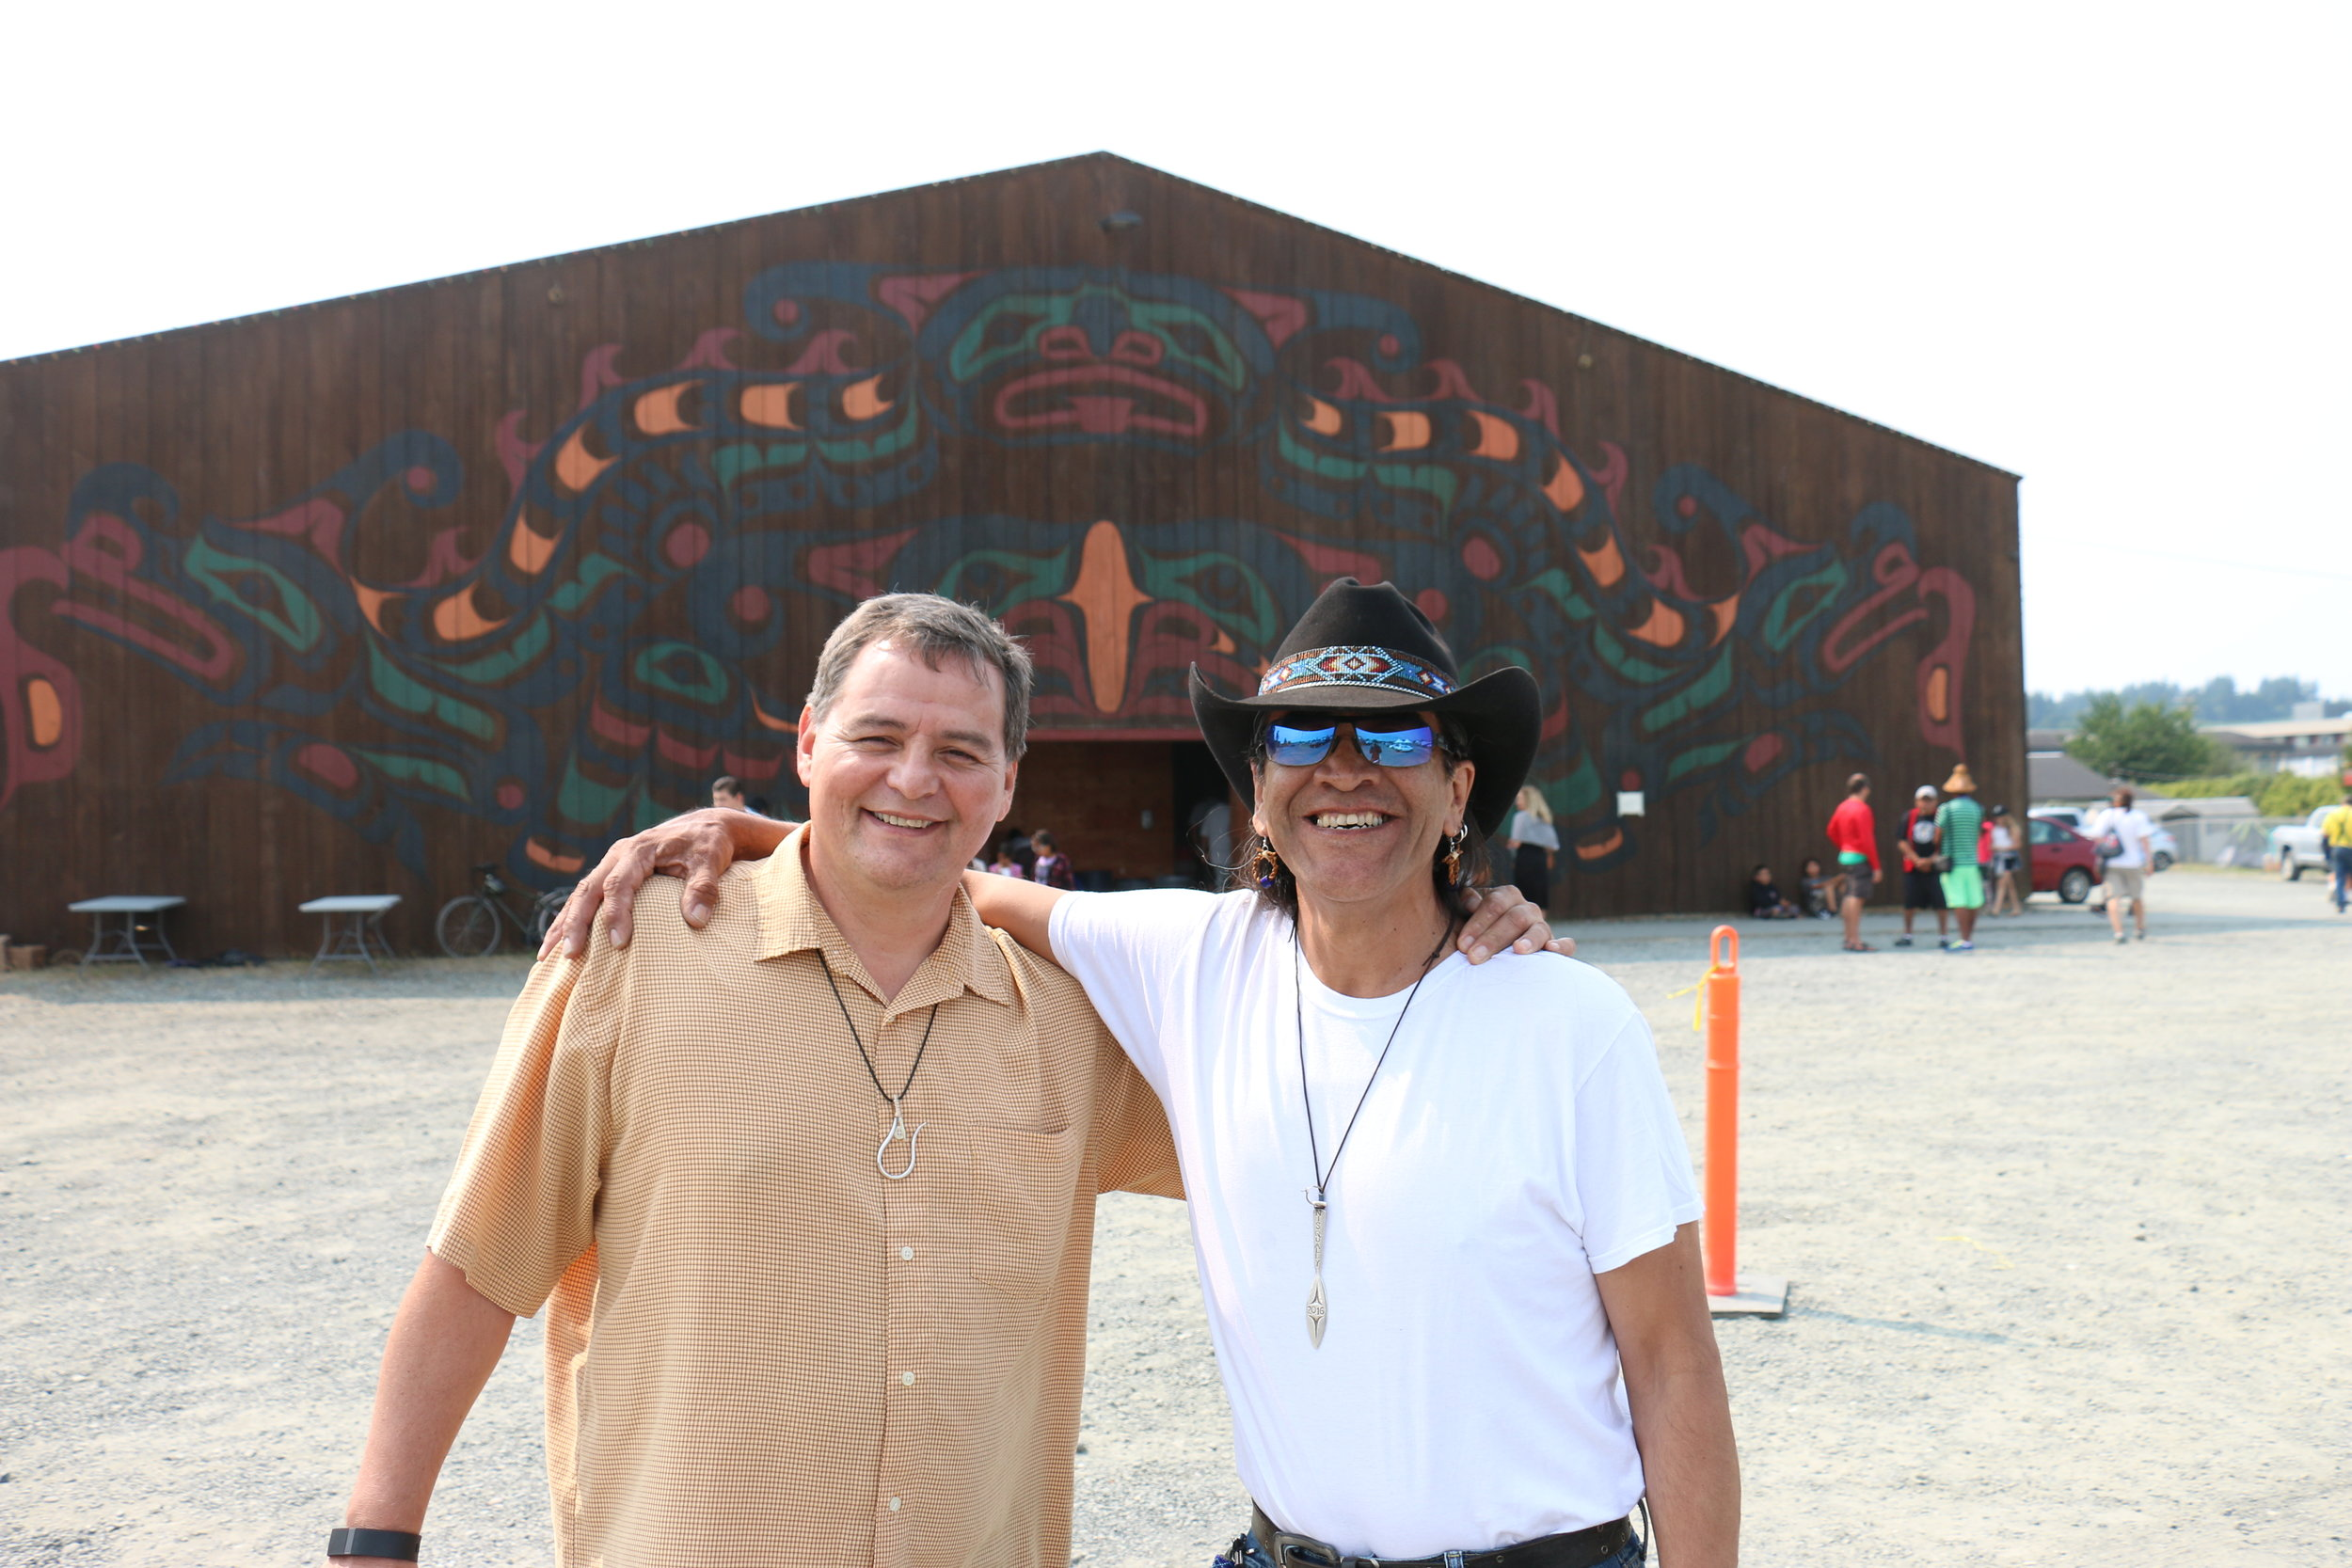 Frank Brown, left, Heiltsuk from Bella Bella and organizer of the first Tribal Canoe Journey in 1986, catches up with Ed Archie NoiseCat, a friend from back in the day. (Julian Brave NoiseCat)